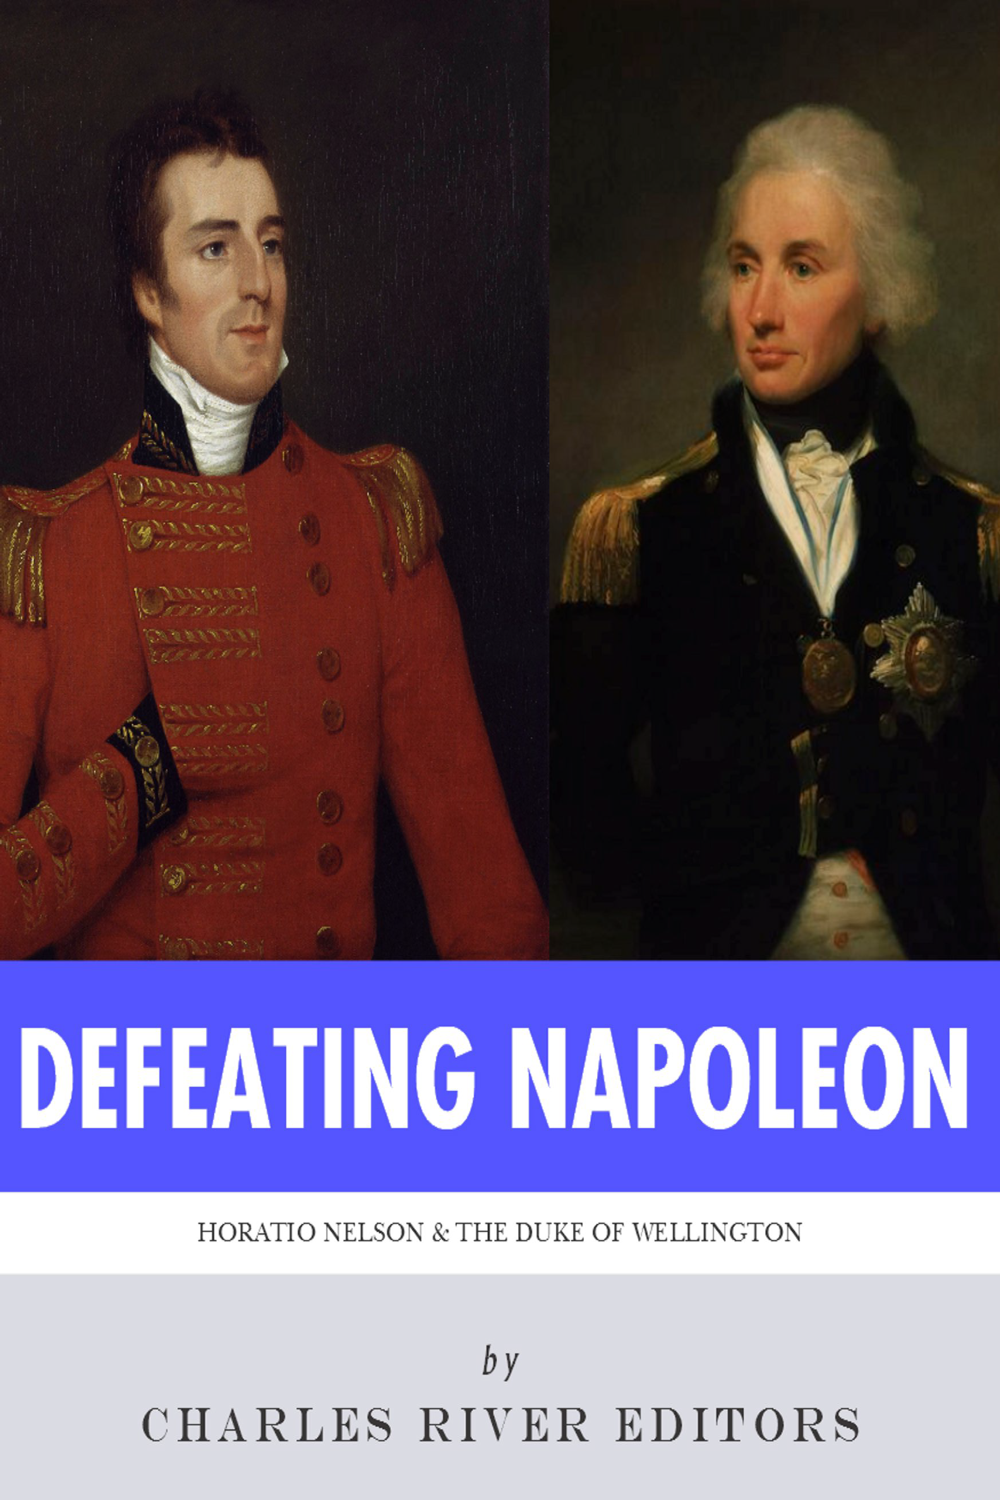 Defeating Napoleon: The Lives and Legacies of Admiral Horatio Nelson and Arthur Wellesley, Duke of Wellington